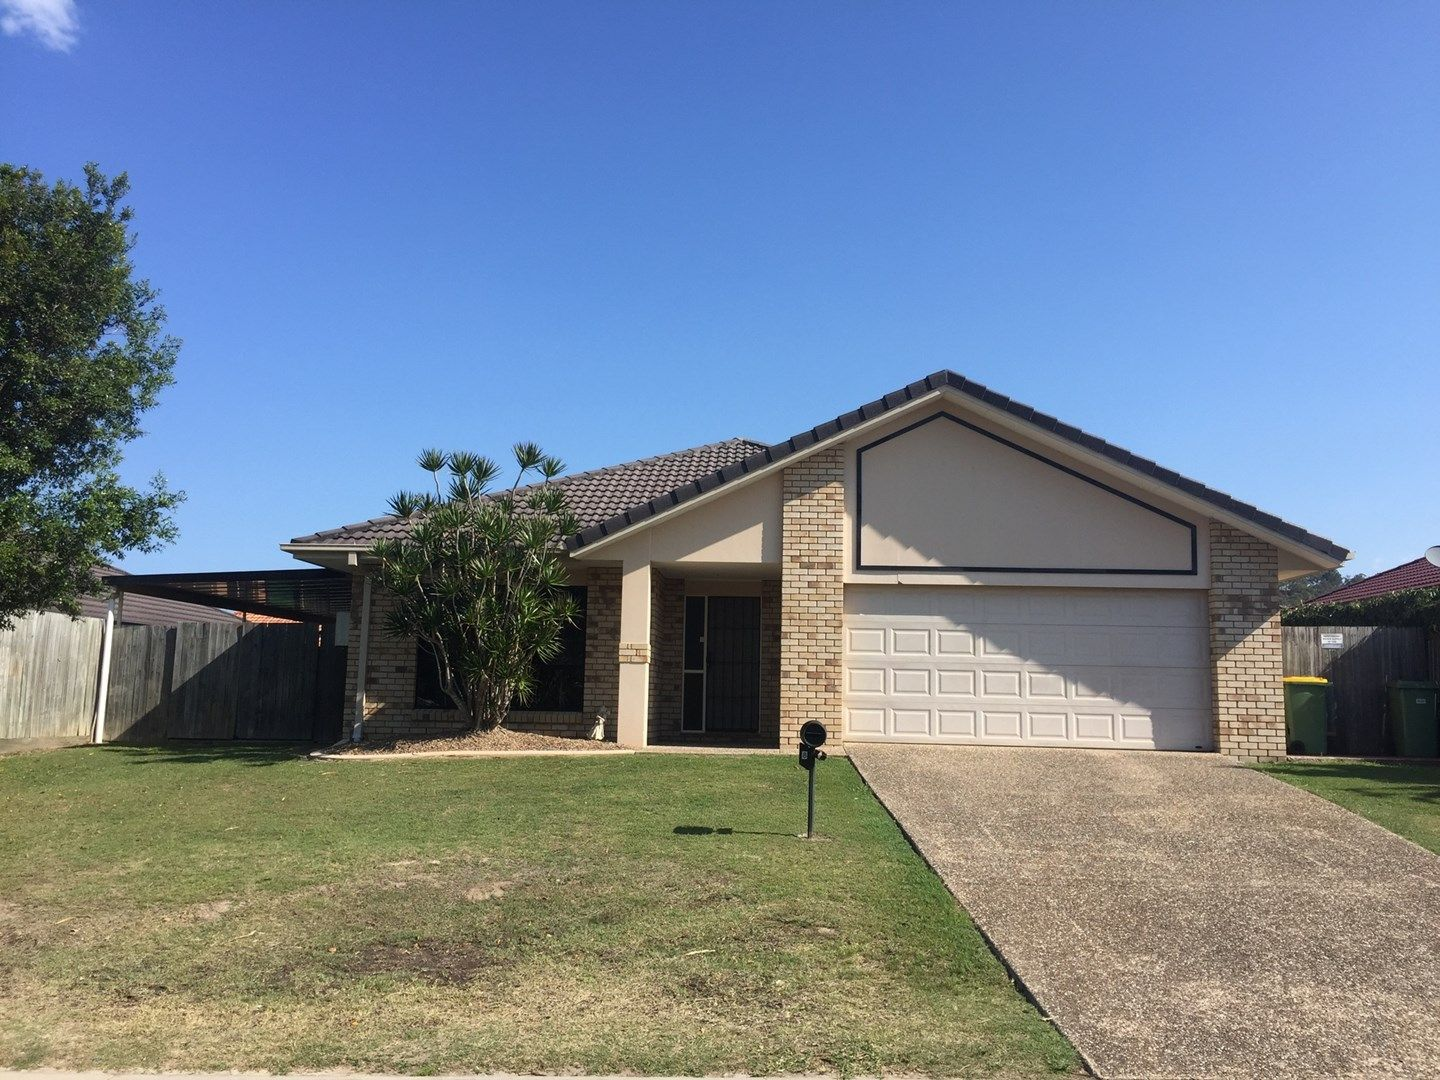 8 Bluetail Crescent, Upper Coomera QLD 4209, Image 0